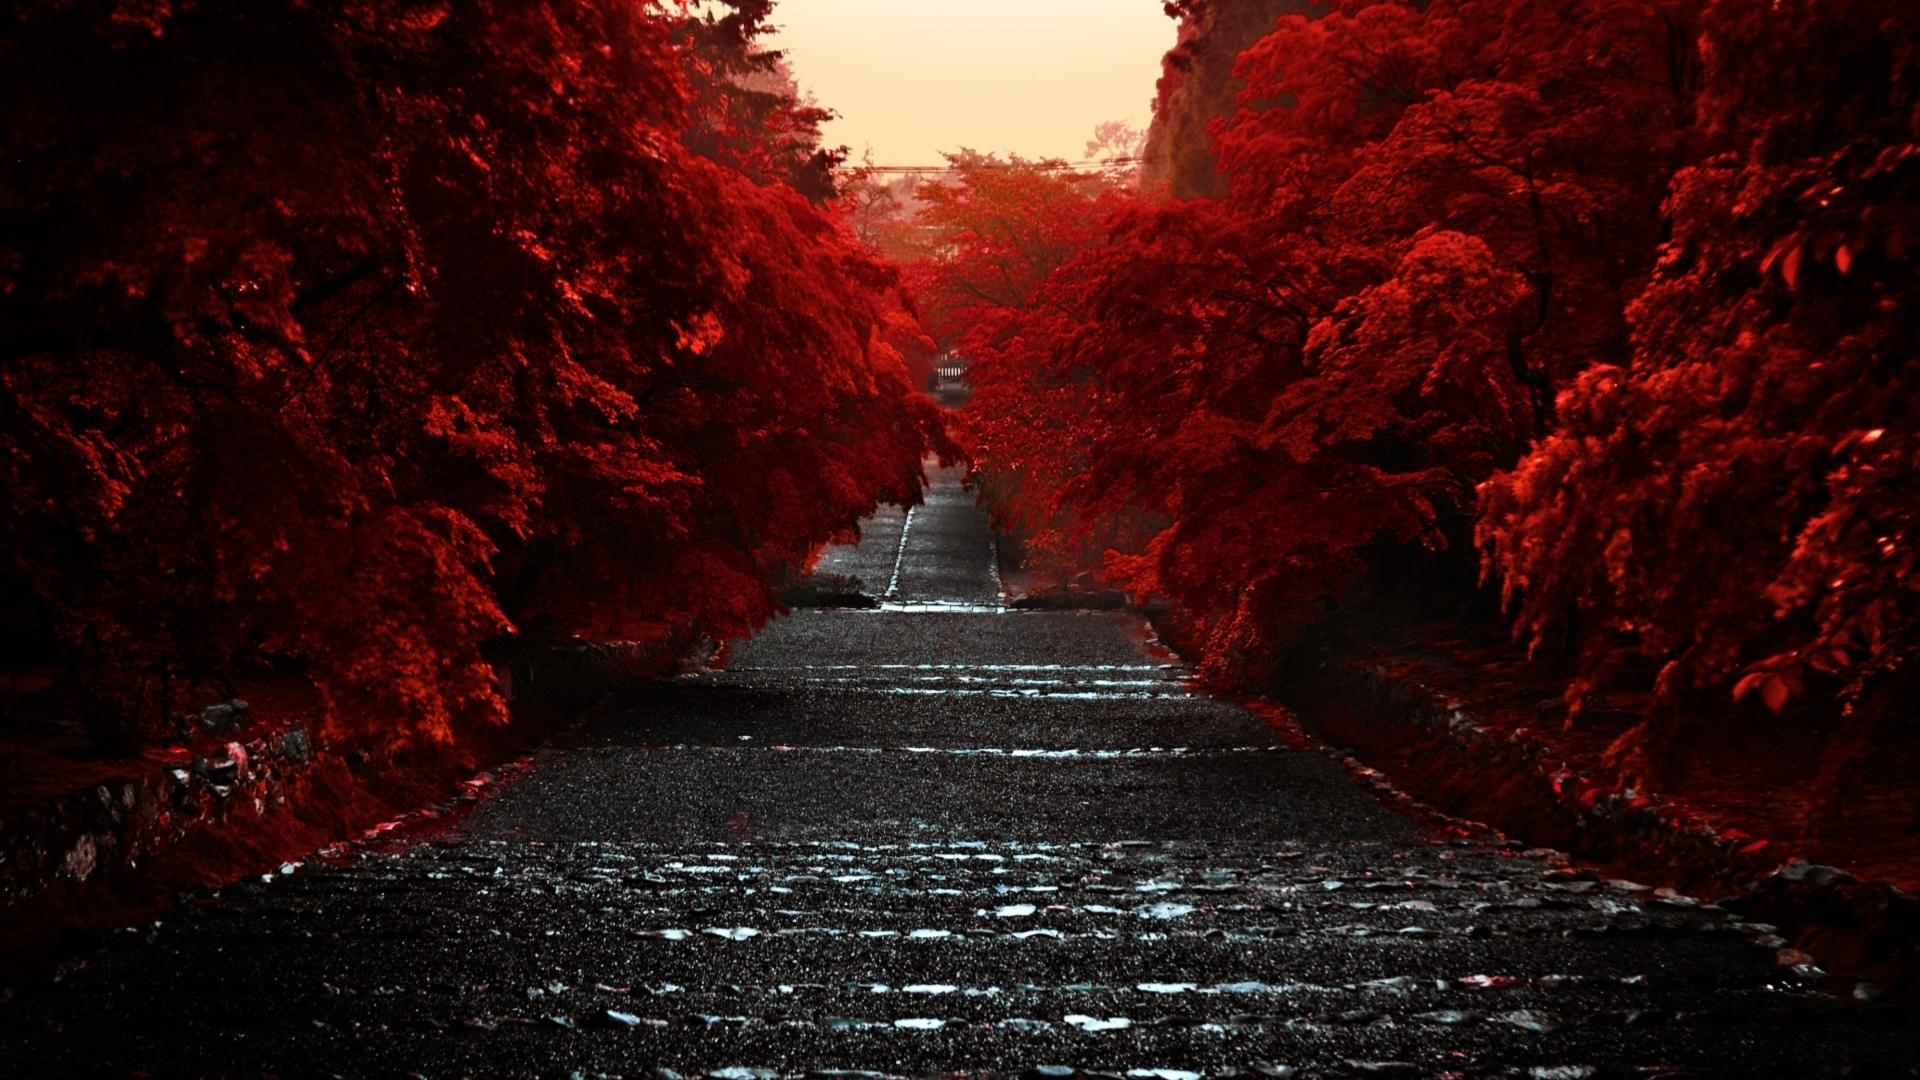 japanese writing wallpaper 29 japanese desktop wallpaper images in the best available resolution enjoy and share them with all your friends.